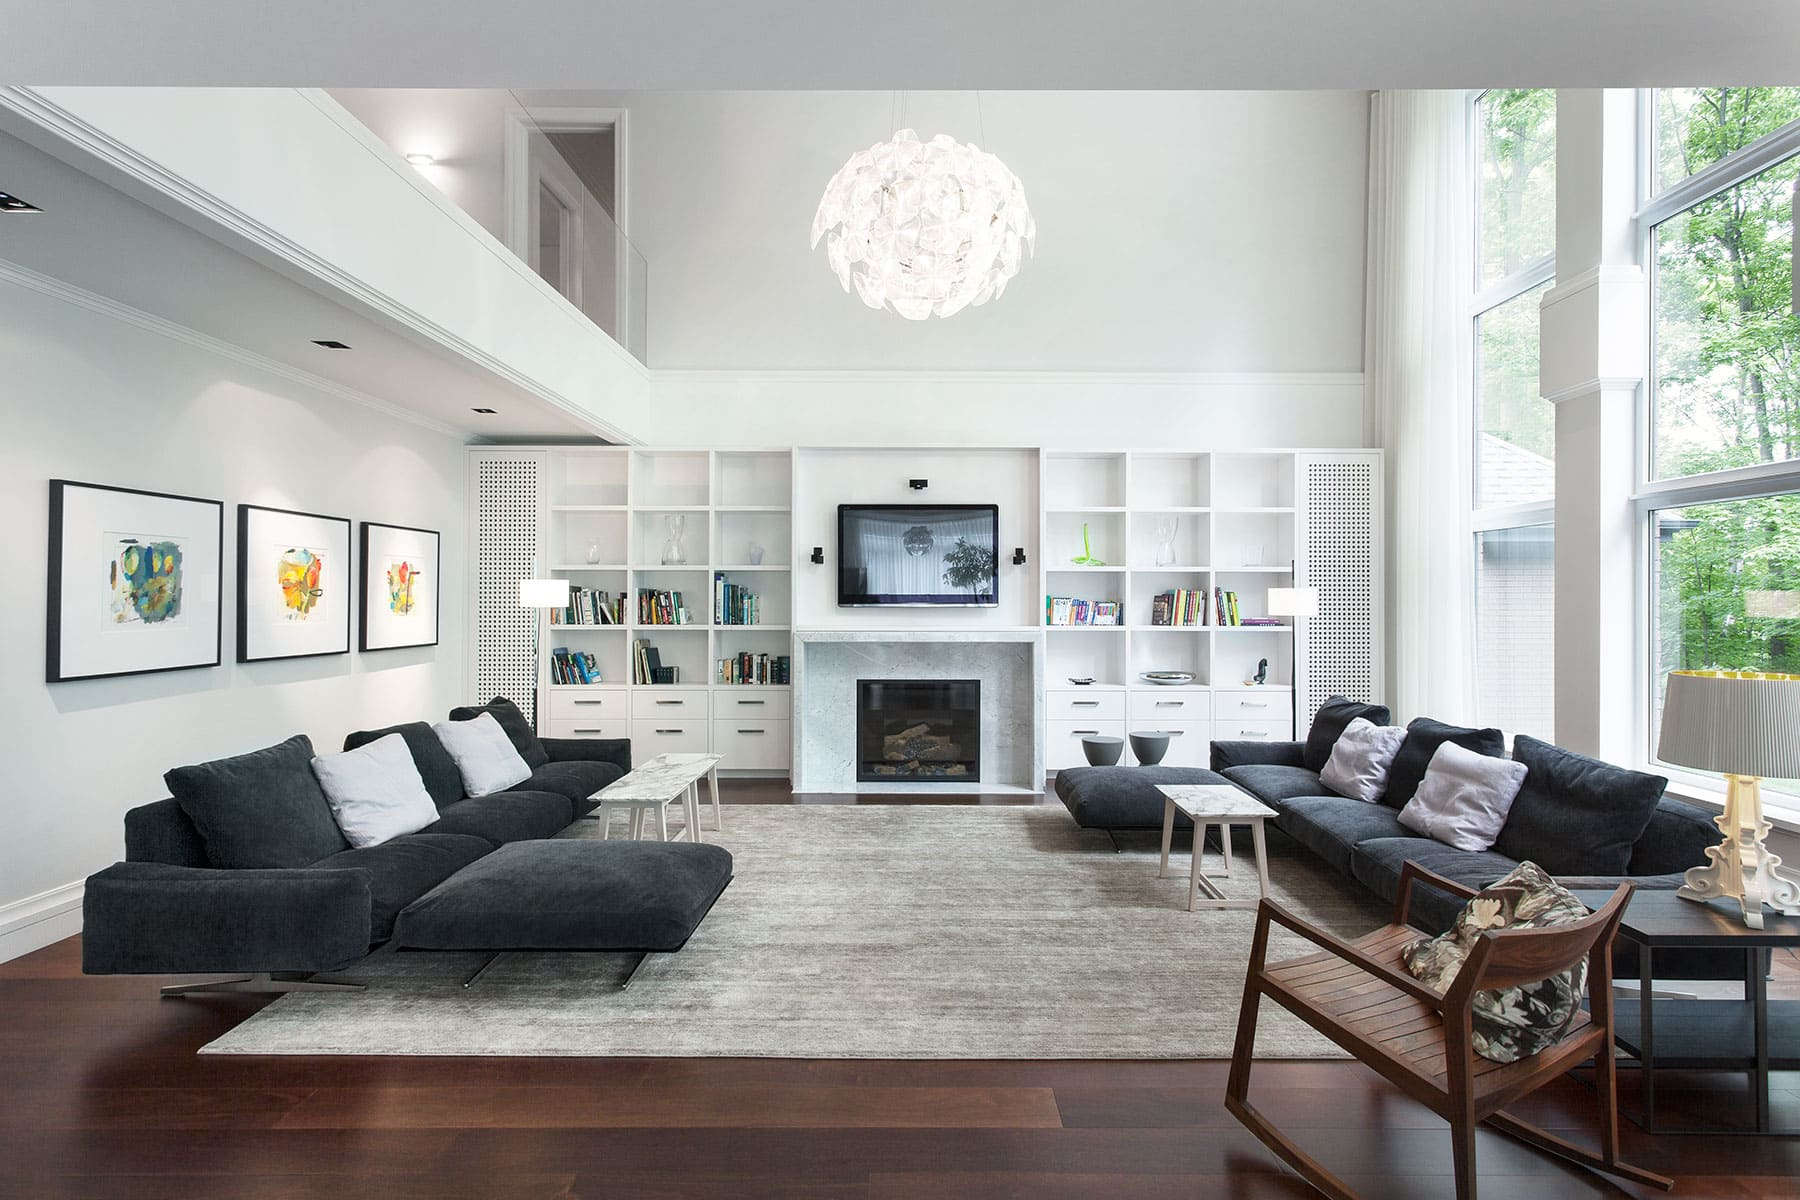 Apartment & Condo Cleaning Services in Montreal